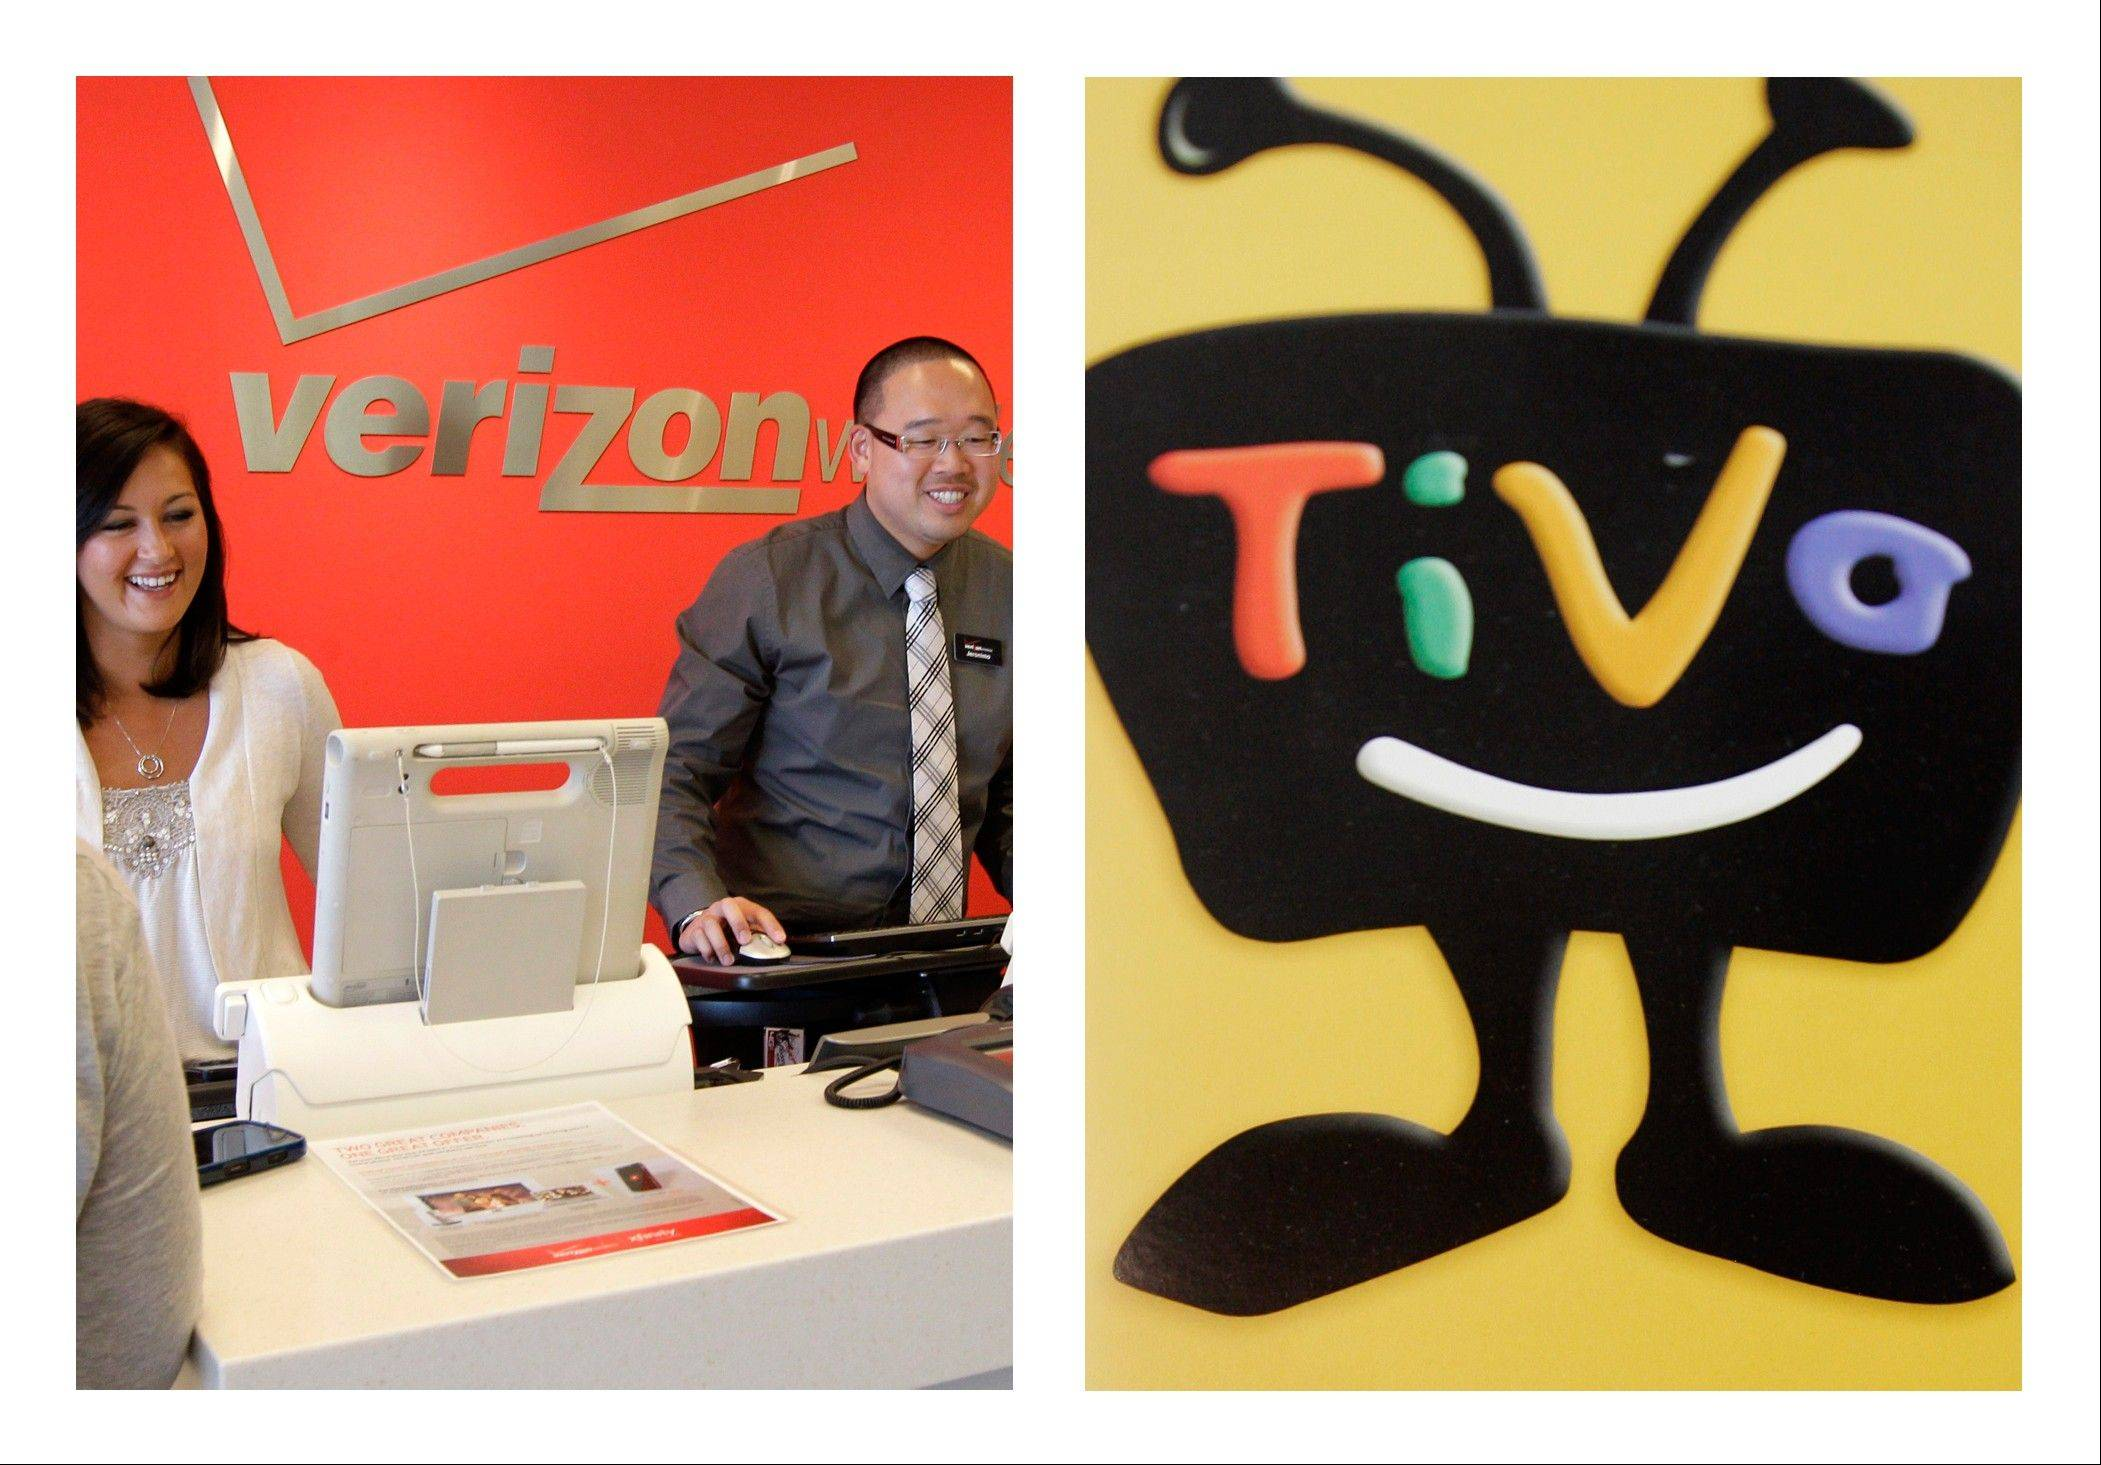 Verizon will pay Tivo at least $250.4 million to license its digital video recording technology and settle a patent lawsuit on Monday. It is the third settlement Tivo has gotten in major patent cases.